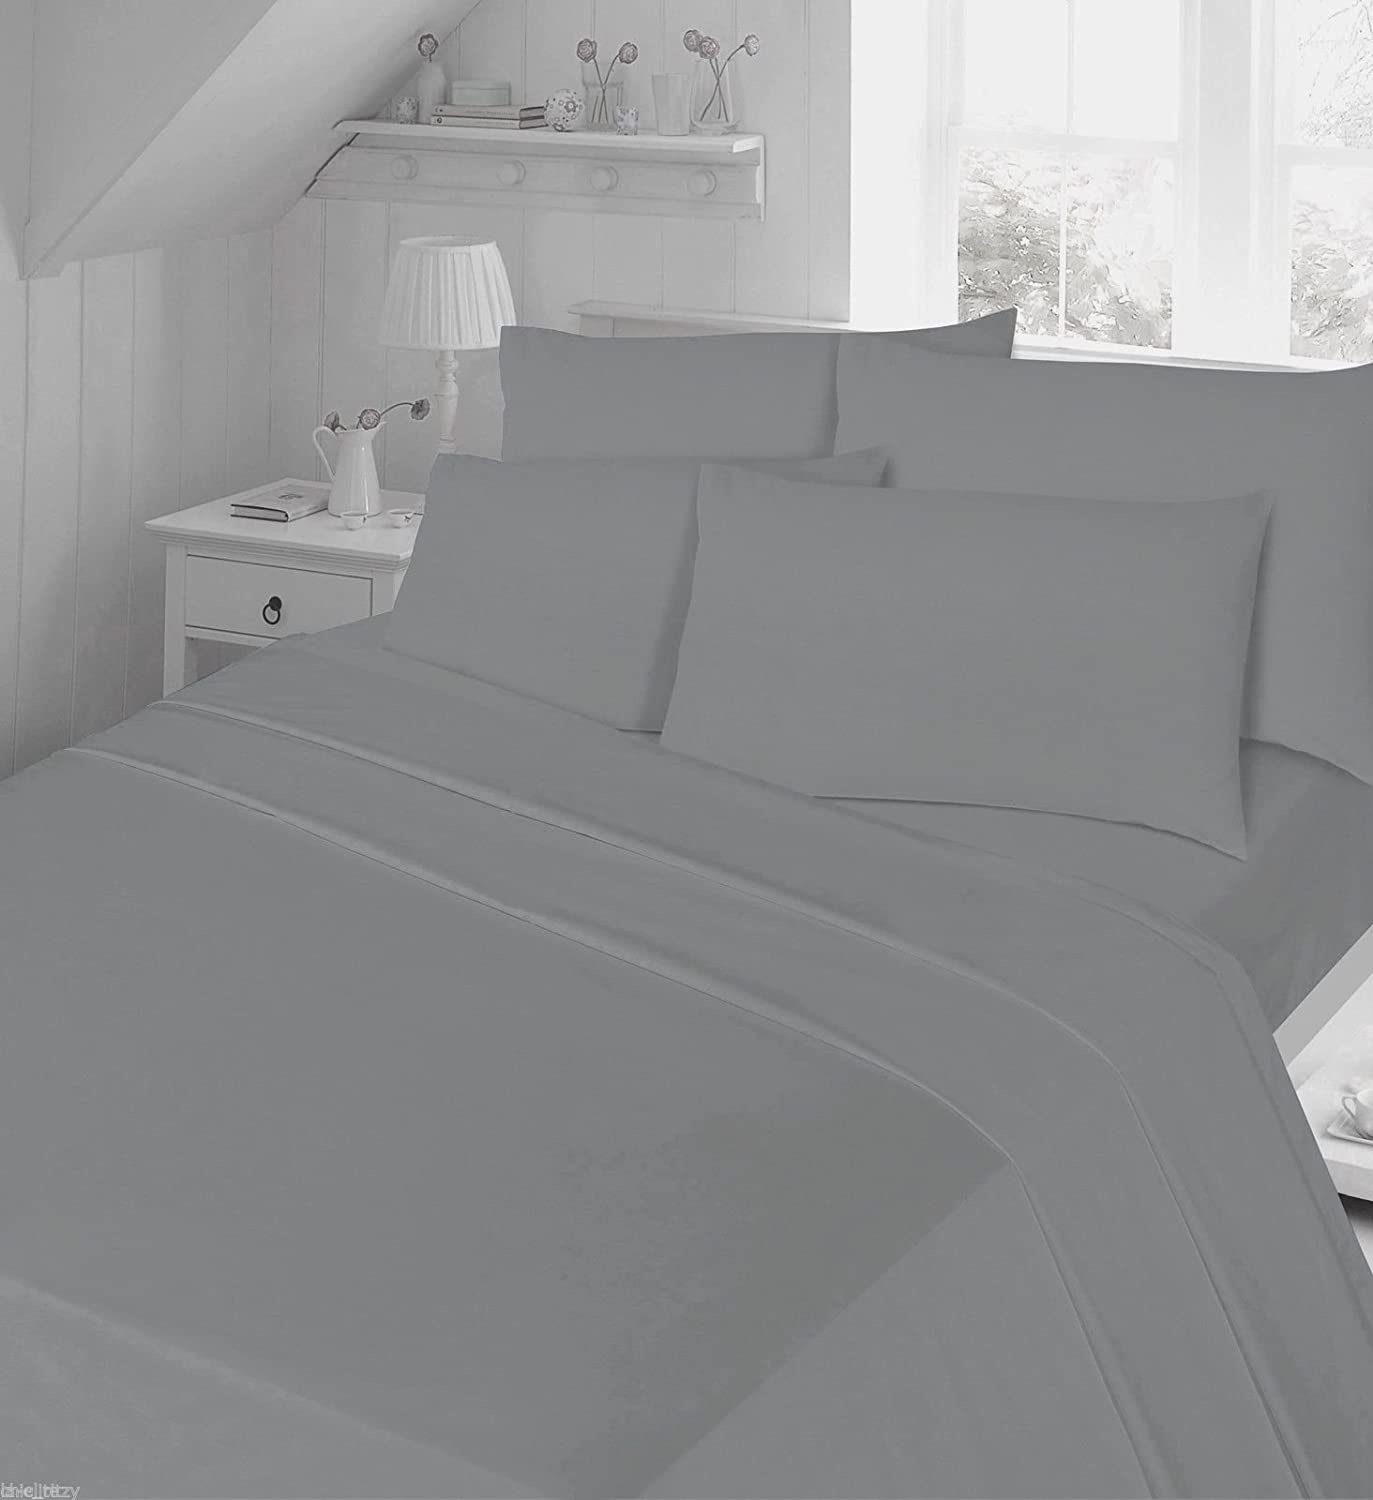 Flannelette Sheet Set King Size with Pillowcases Bedding Set 100% Cotton Includes 1 Fitted Sheet + 1 Flat Sheet + 2 Pillowcase, Cream King NIGHTZONE